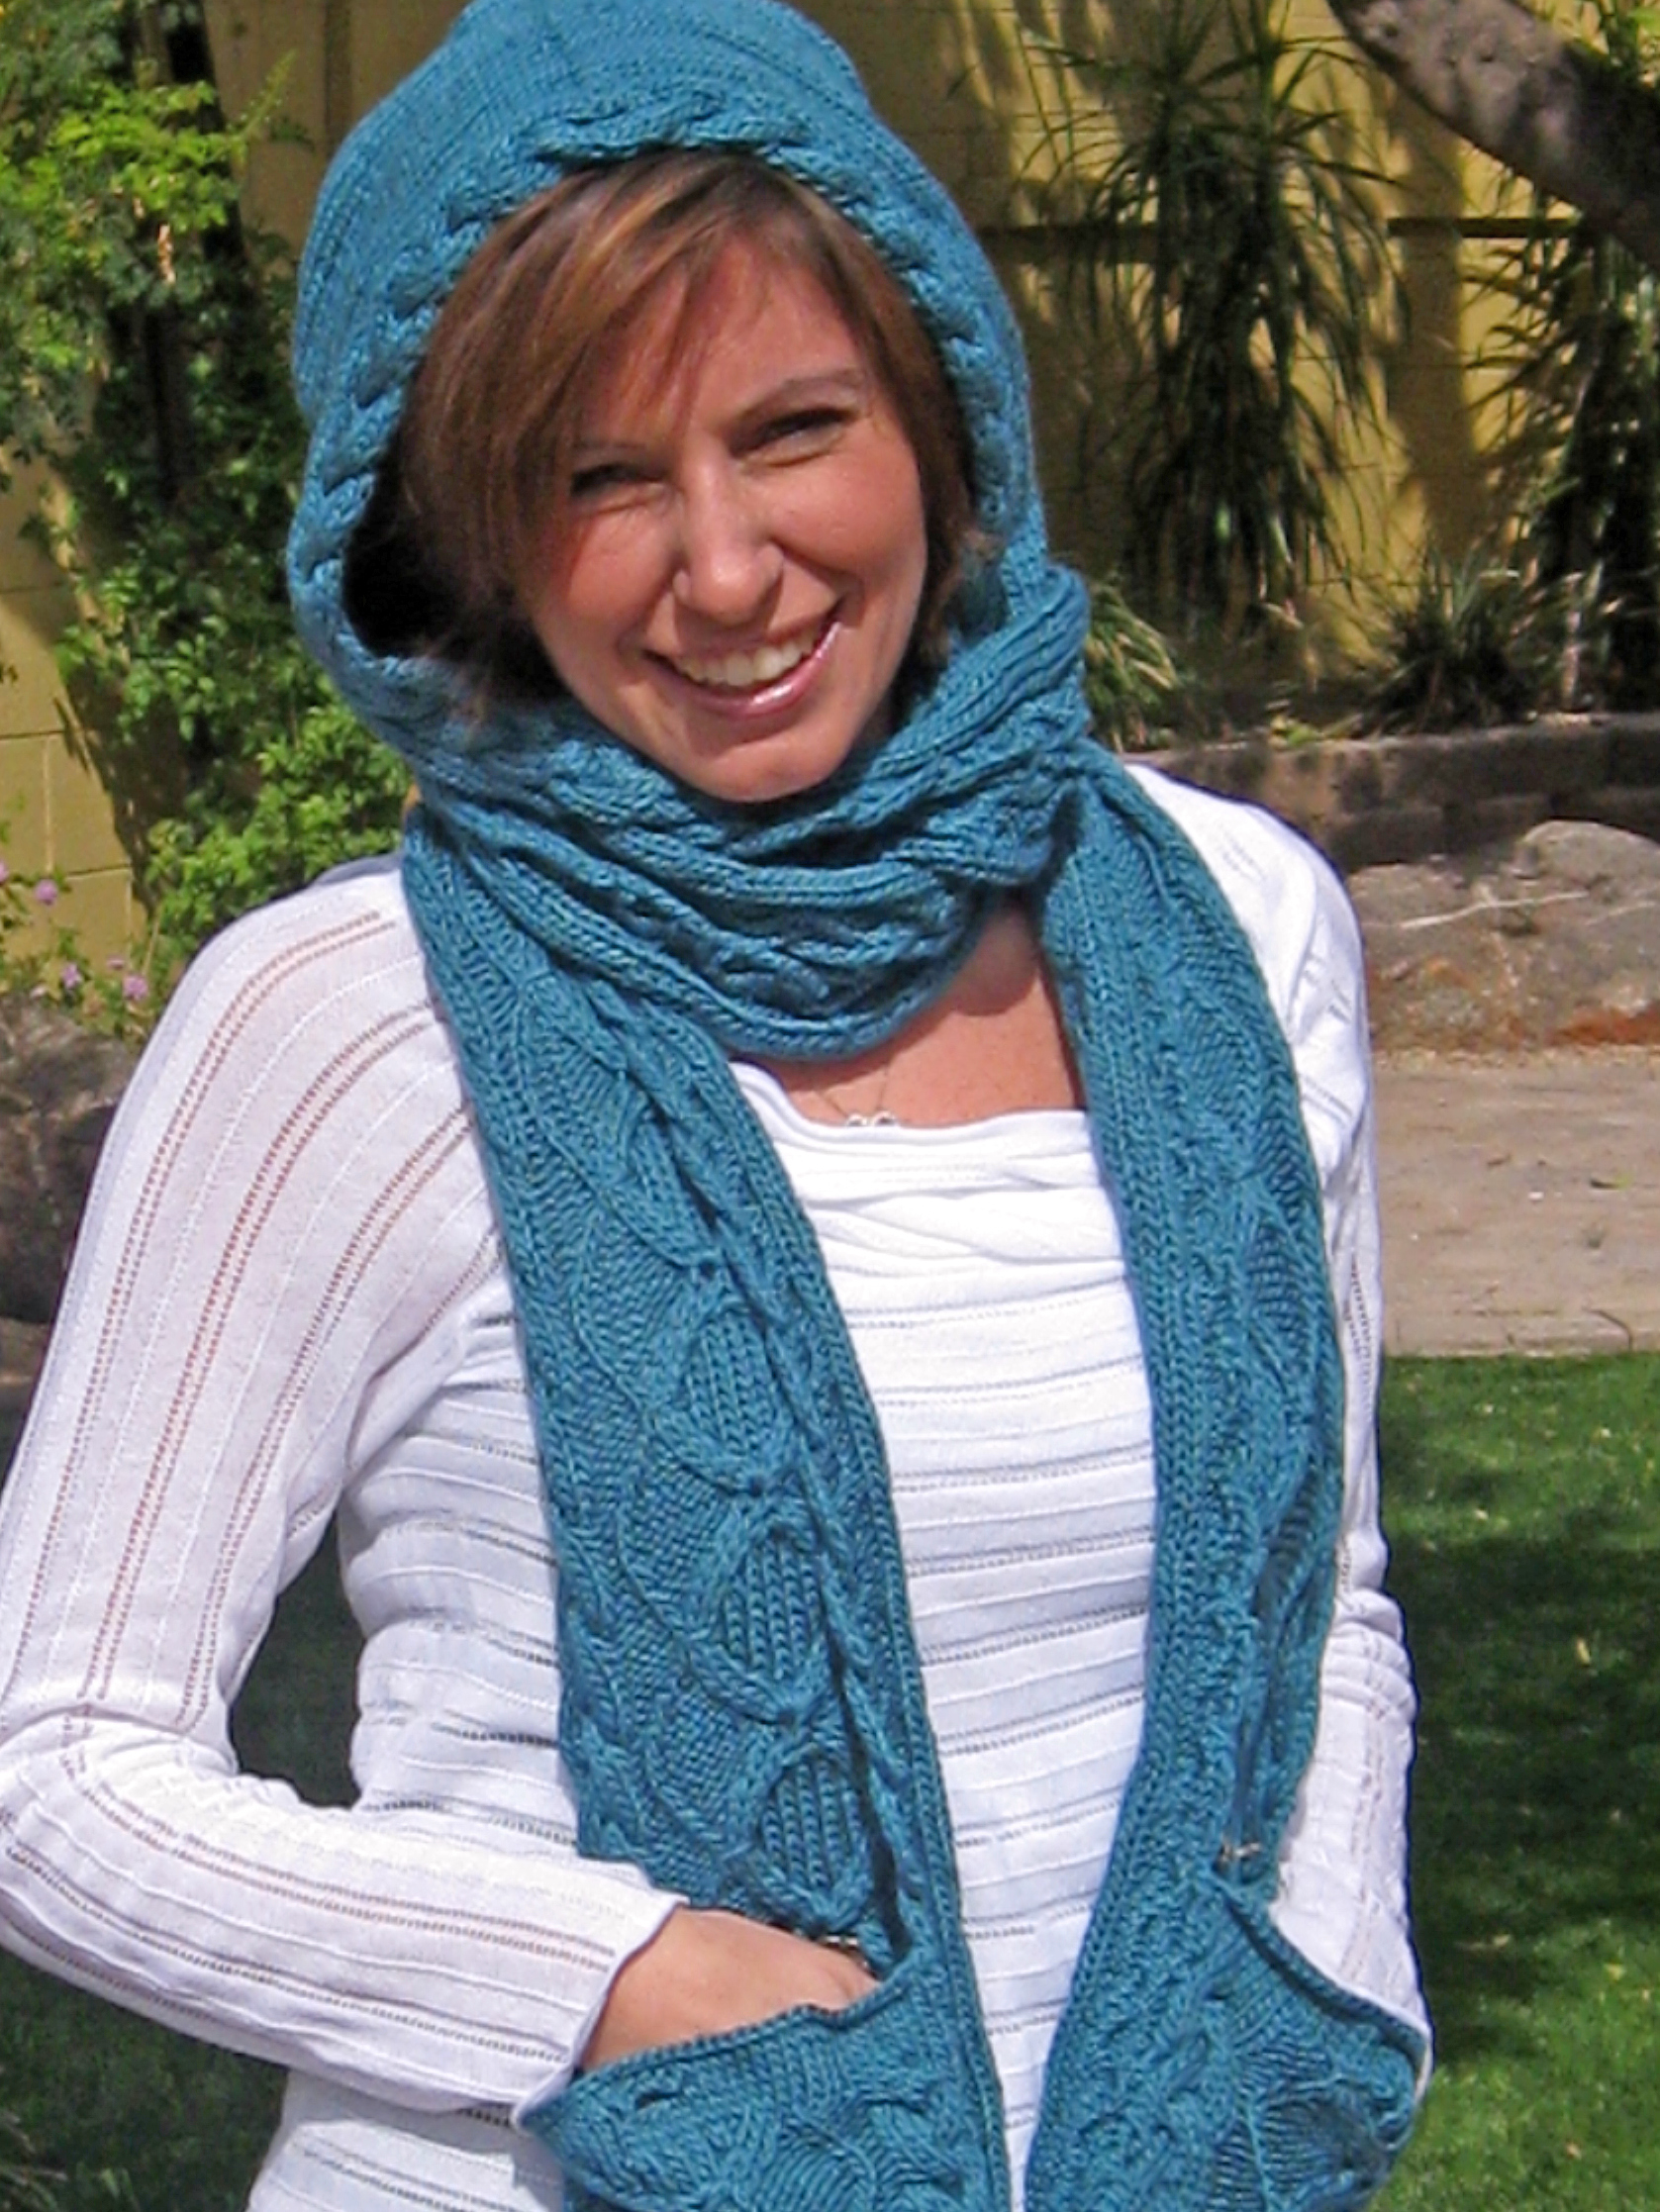 Knitting Pattern Scarf With Pockets : FREE CROCHET HOOD PATTERNS - Crochet and Knitting Patterns